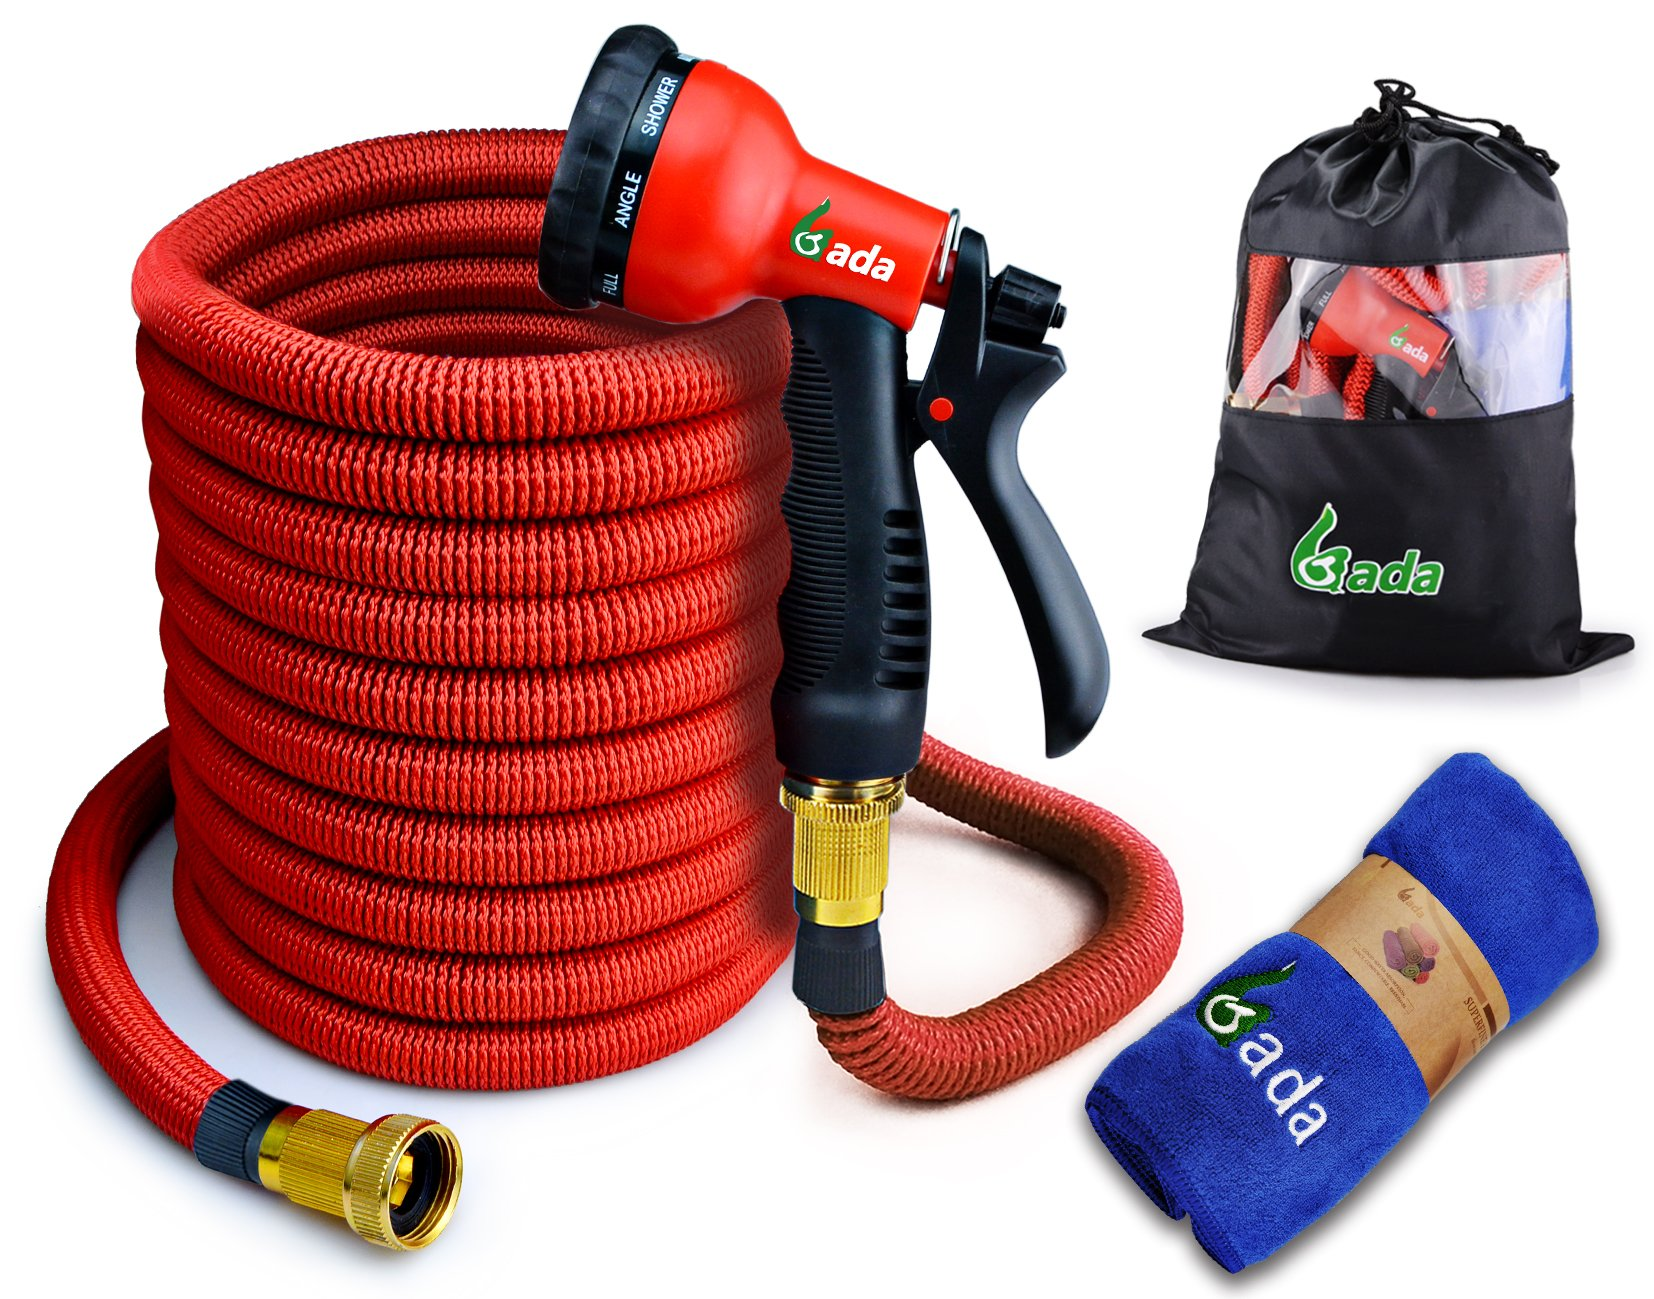 Gada Flexible Garden Hose with 8-Function Sprayer - Expandable Hose Pipe Wont Leak, Doesn't Twist & Kink- Lightweight Expanding Water Hose 50FT